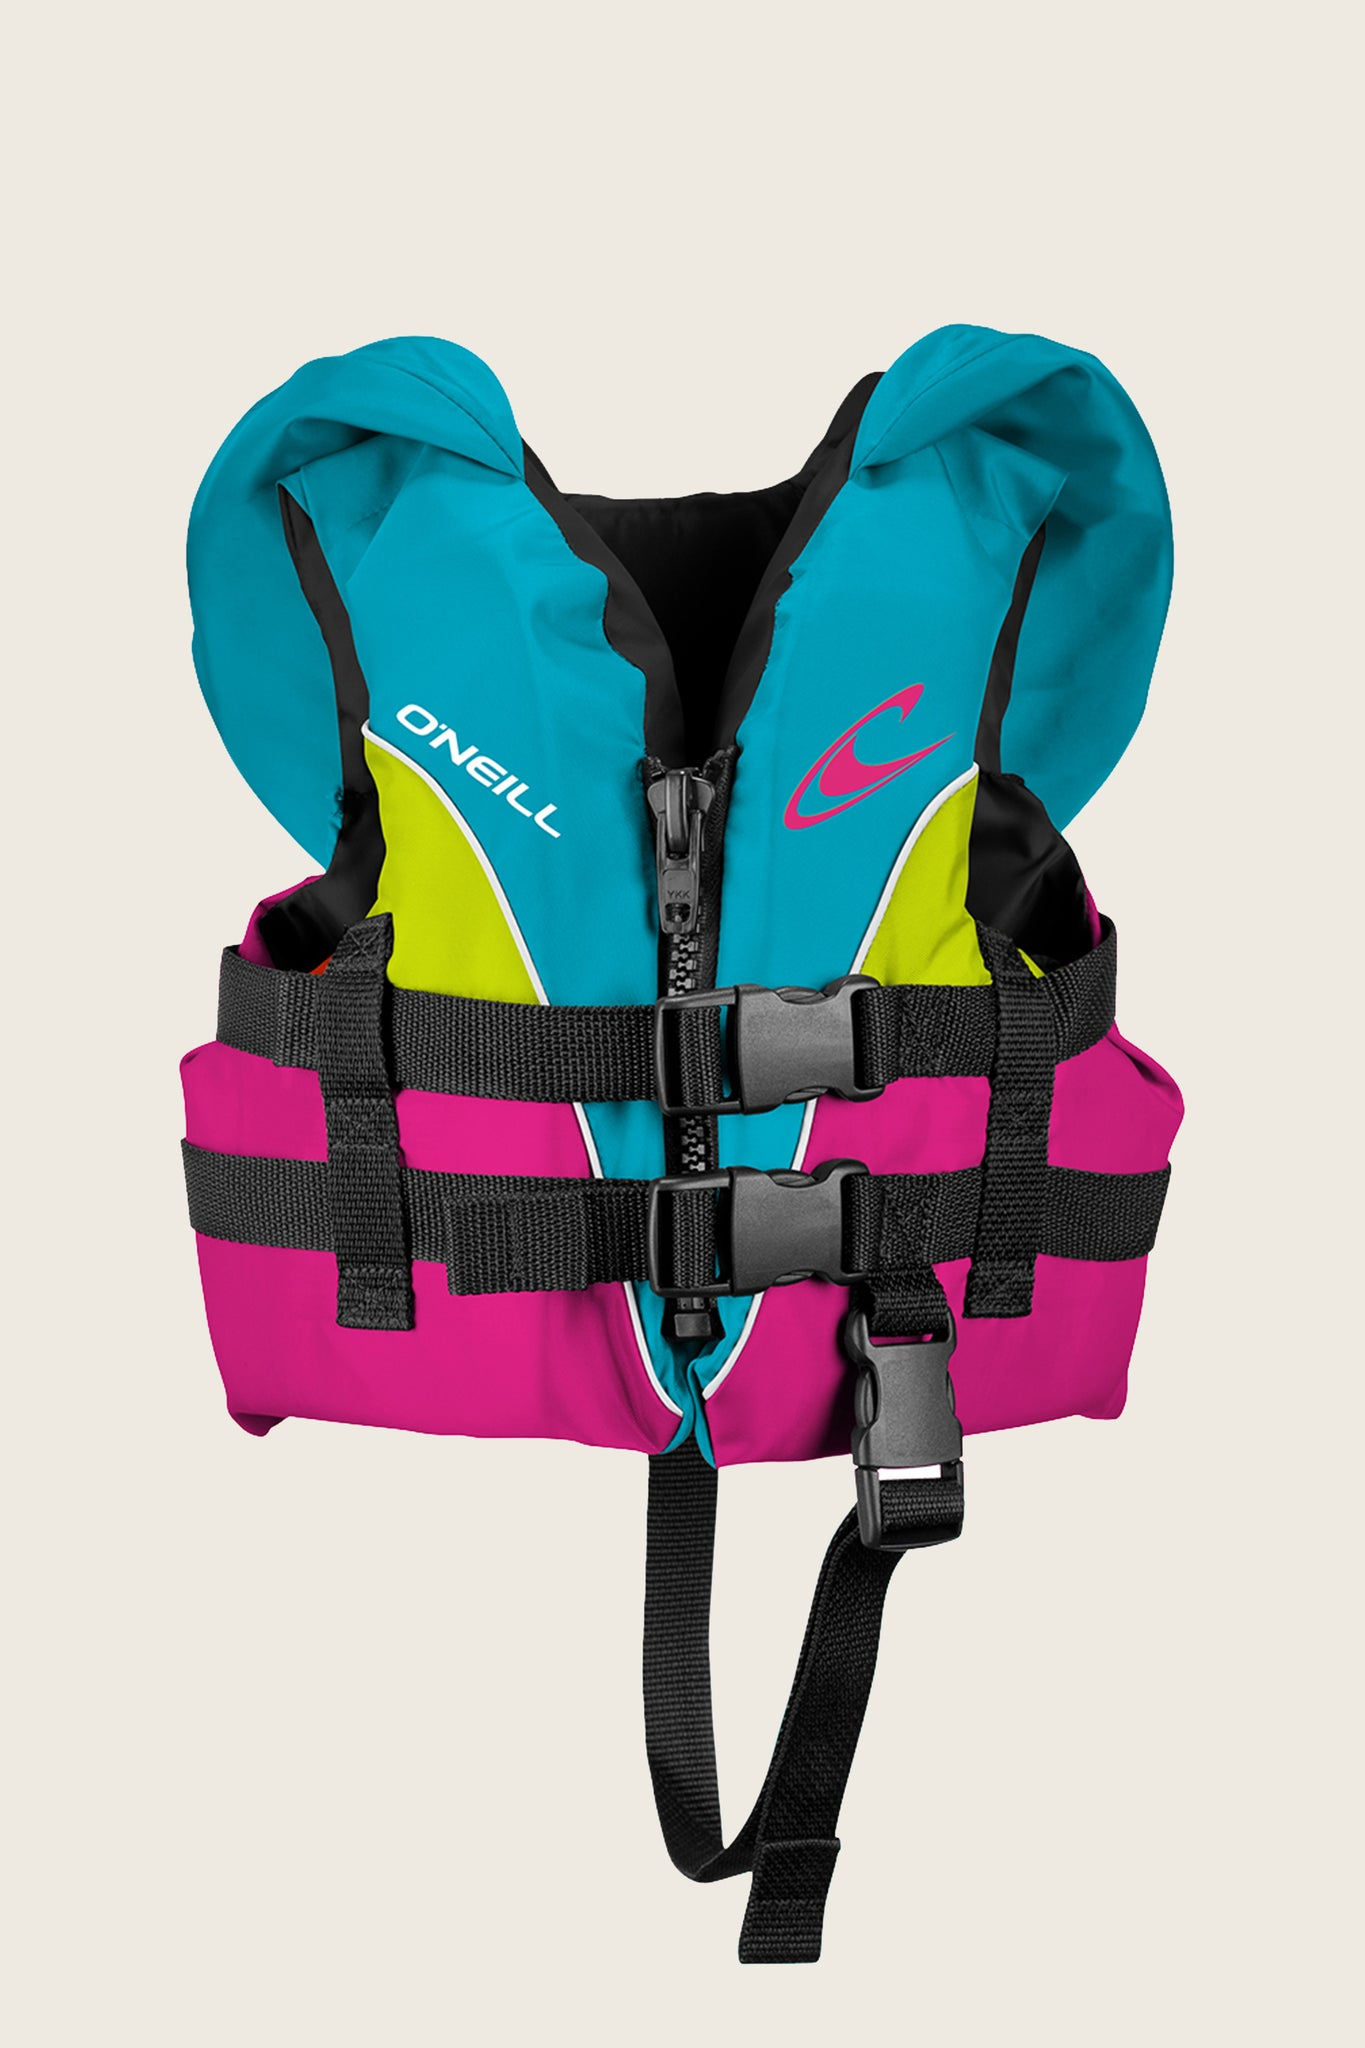 Infant Superlite Uscg Vest - Turq/Berry/Lime:Wht | O'Neill